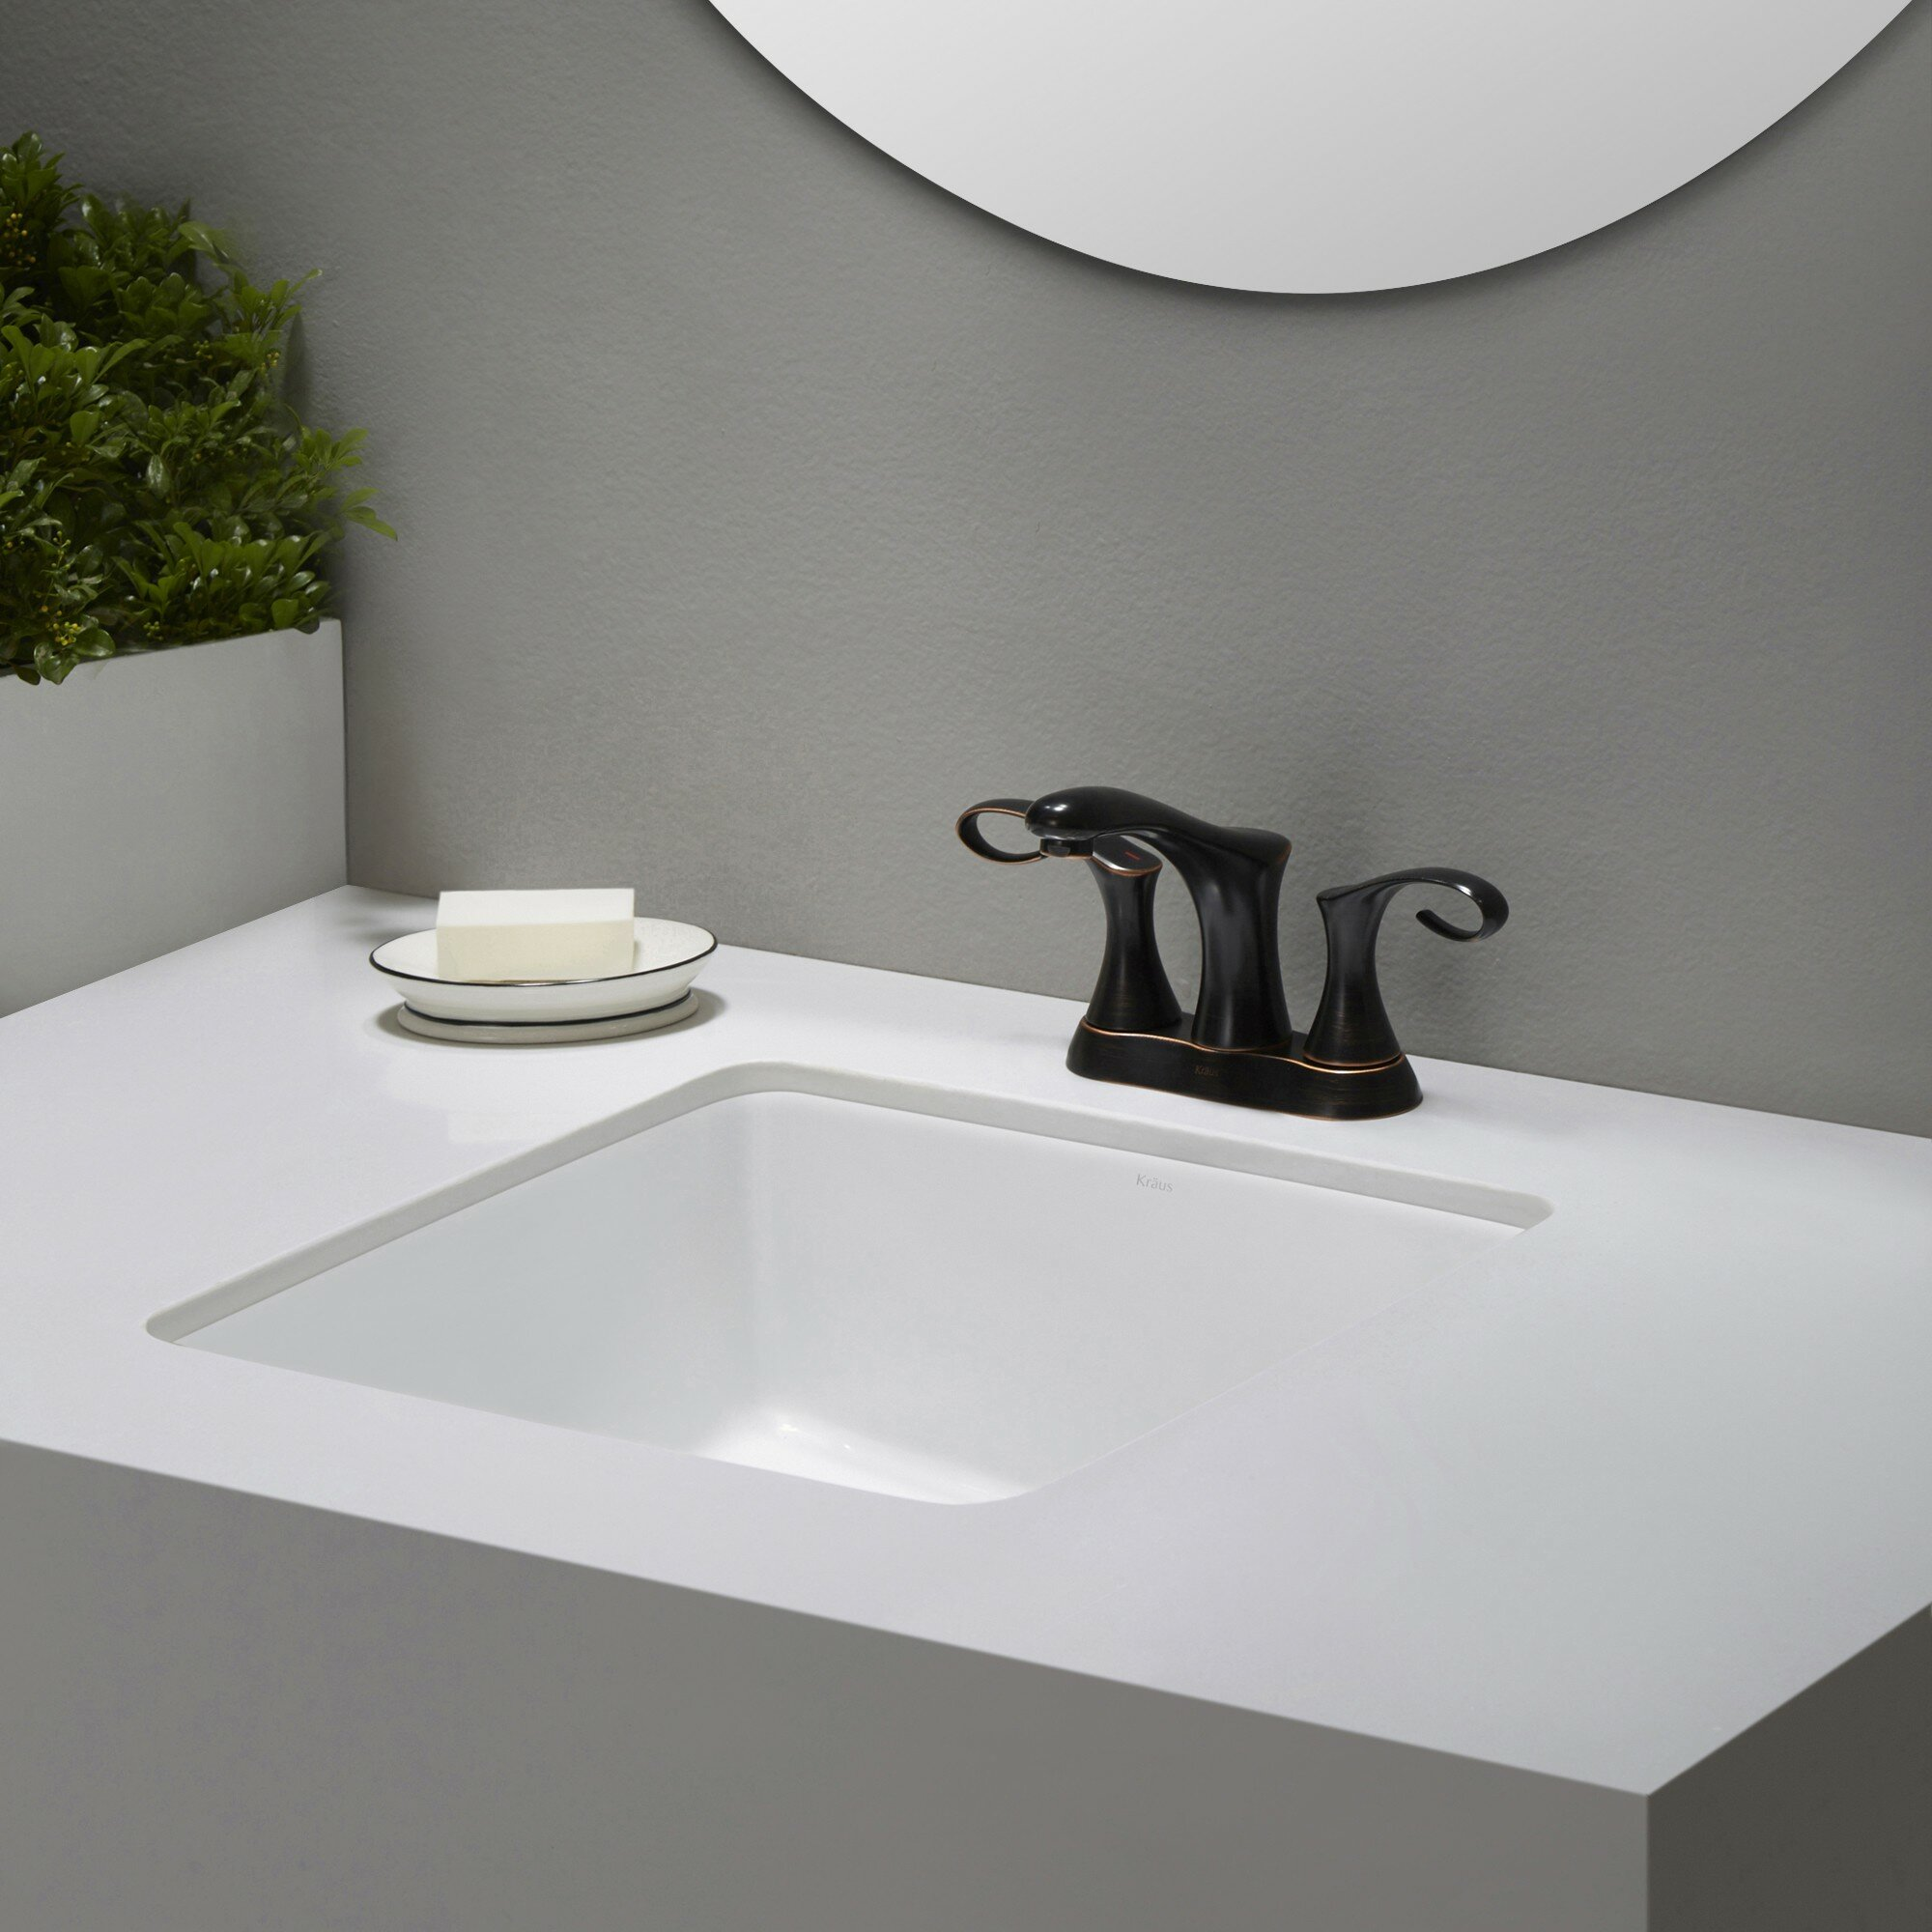 Elavo ceramic square undermount bathroom sink with - How to install an undermount bathroom sink ...